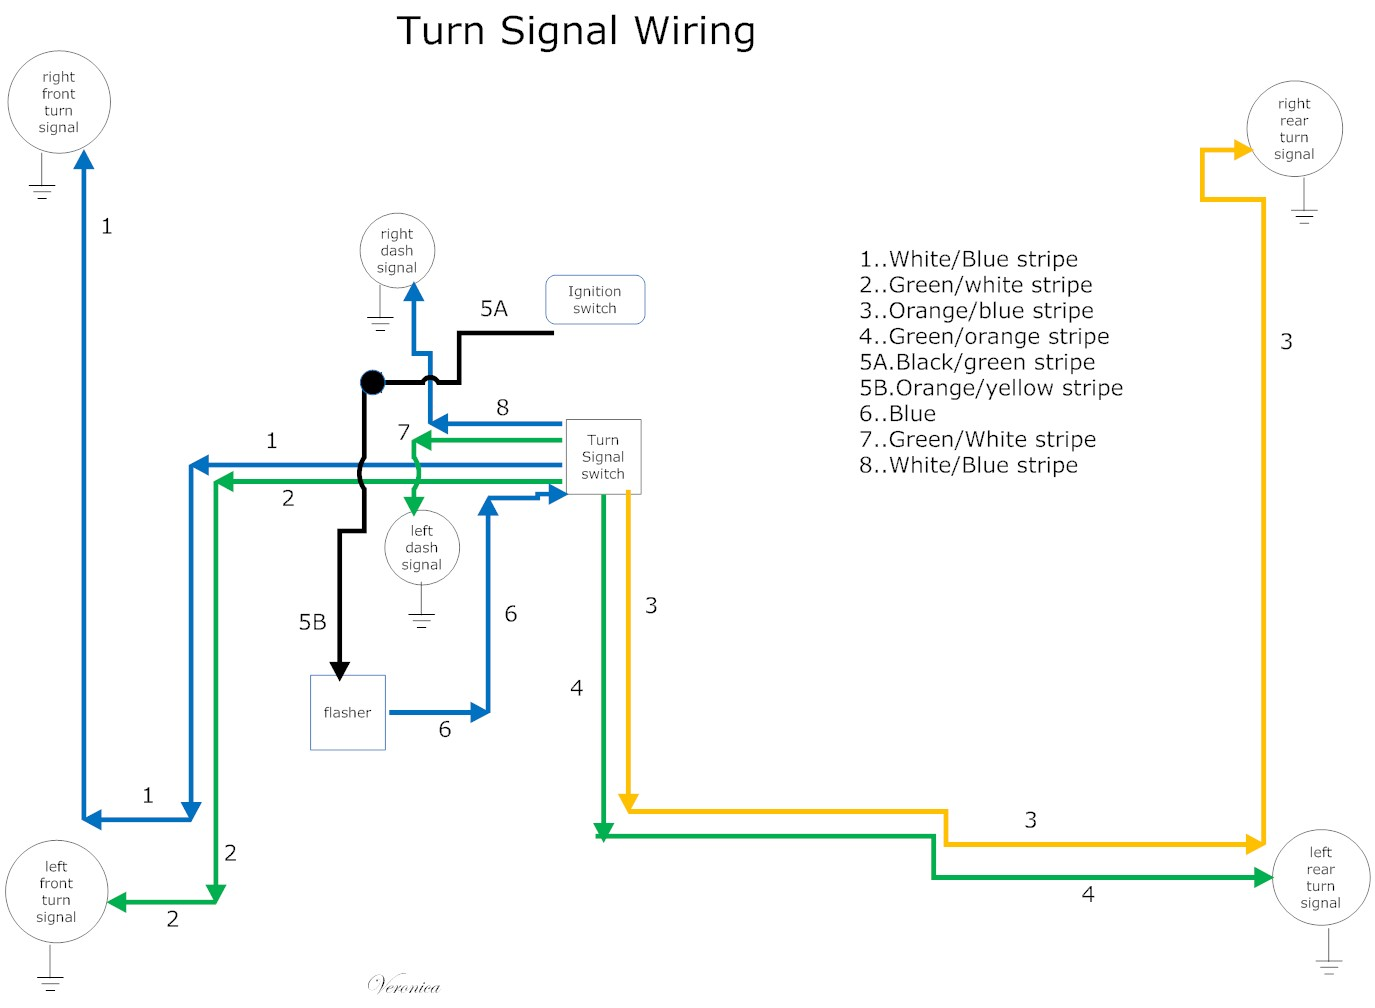 Turn+signal+Wiring the care and feeding of ponies 1965 1966 mustang turn signal turn signal wiring diagram chevy truck at alyssarenee.co